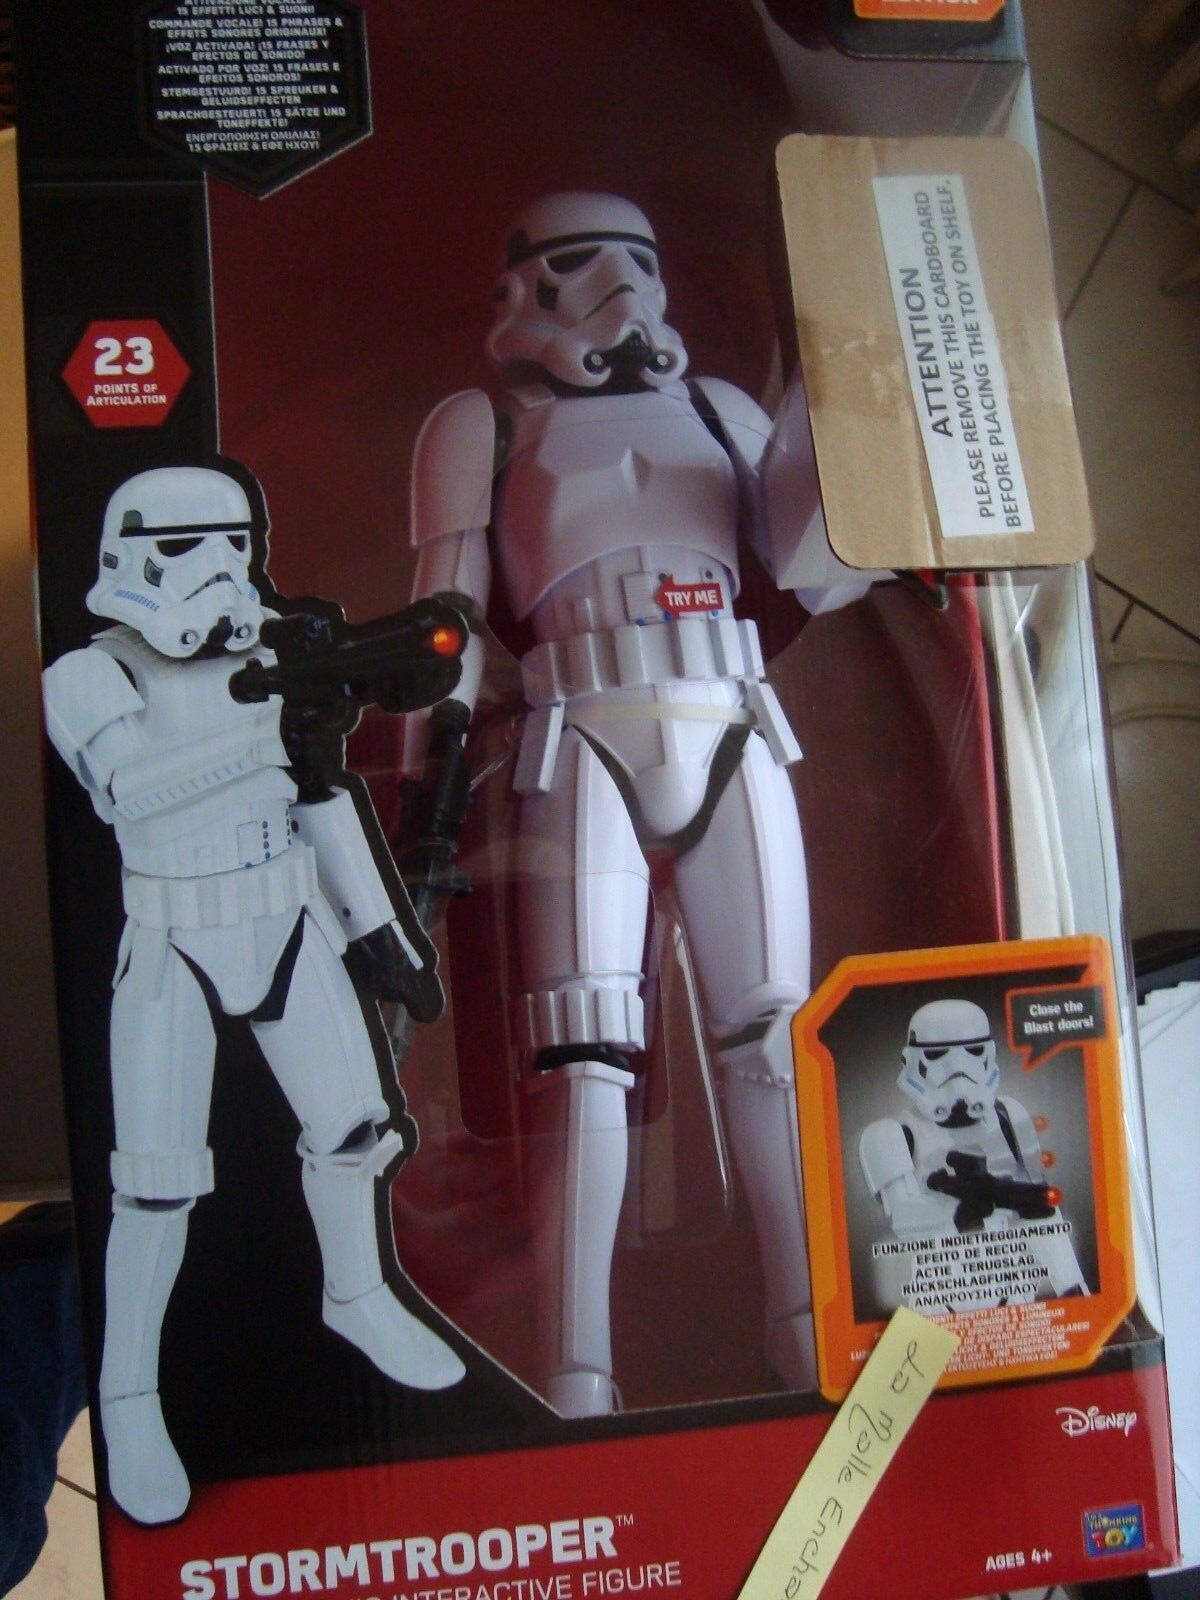 STAR WARS FIGÜRCHEN RIESIG INTERCATIVE 44 CM STORMTROOPER NEU IN SCHACHTEL